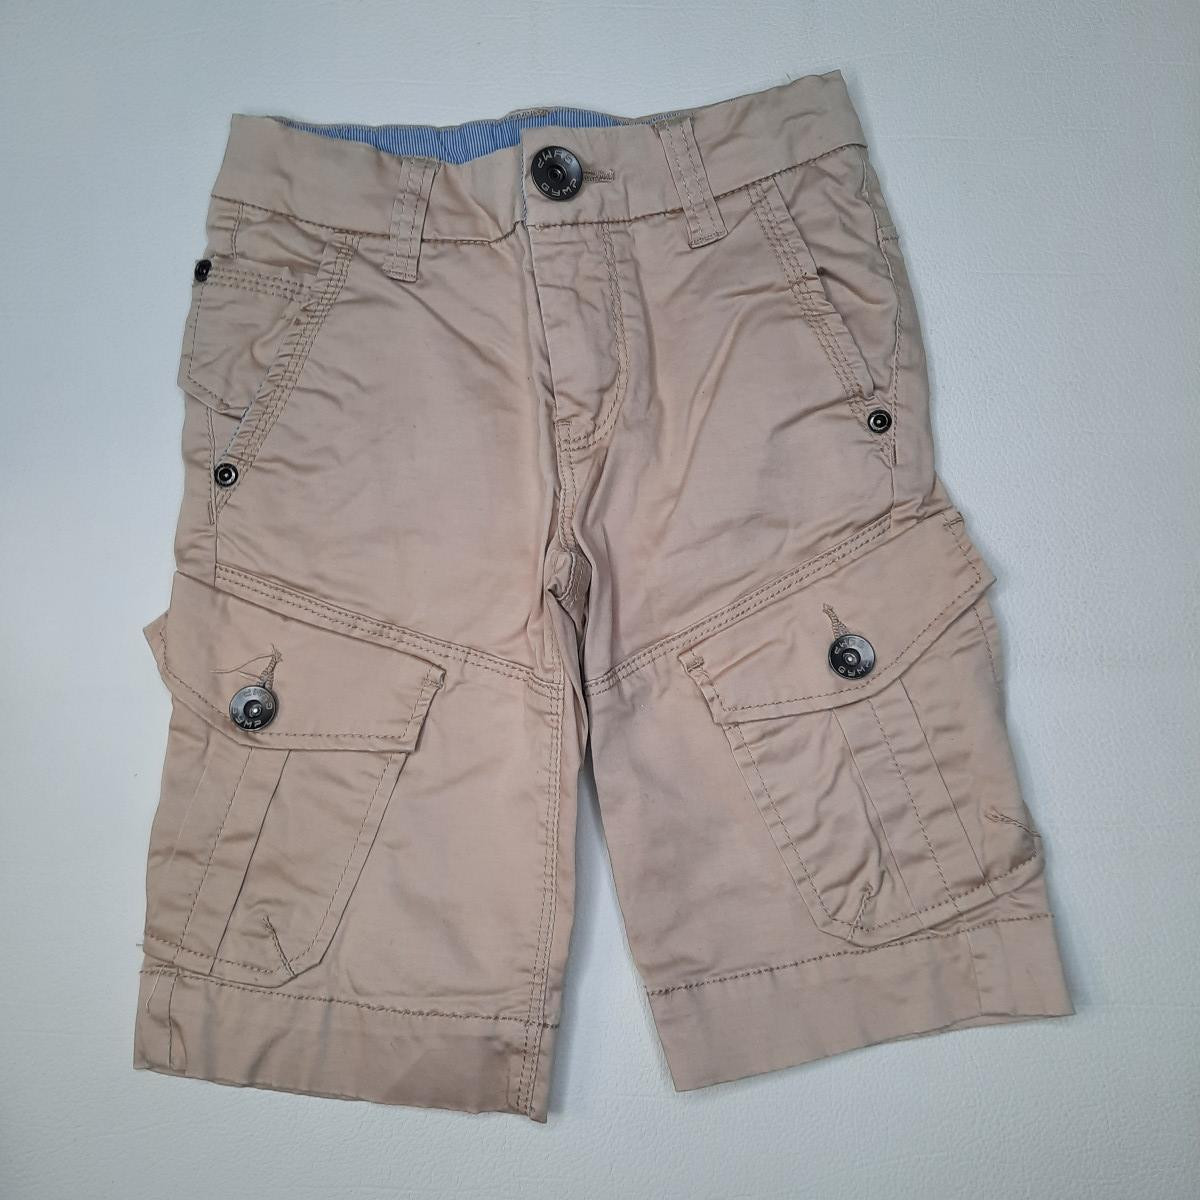 Shorts, Bermudas - photo 33